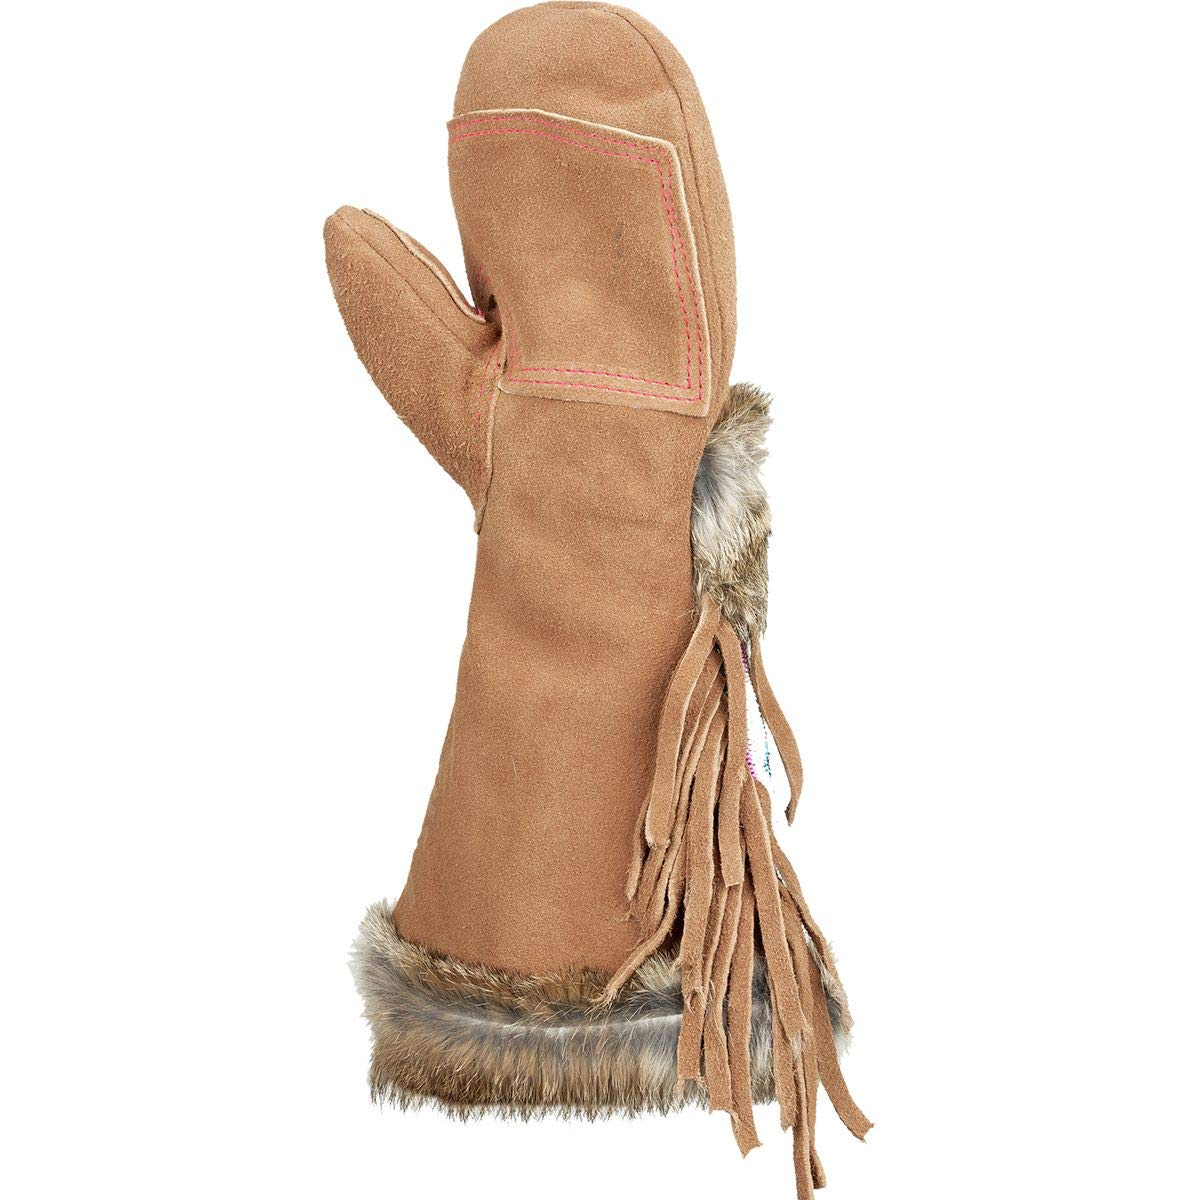 Astis Park Mitten - Women's One Color, S by Astis (Image #2)